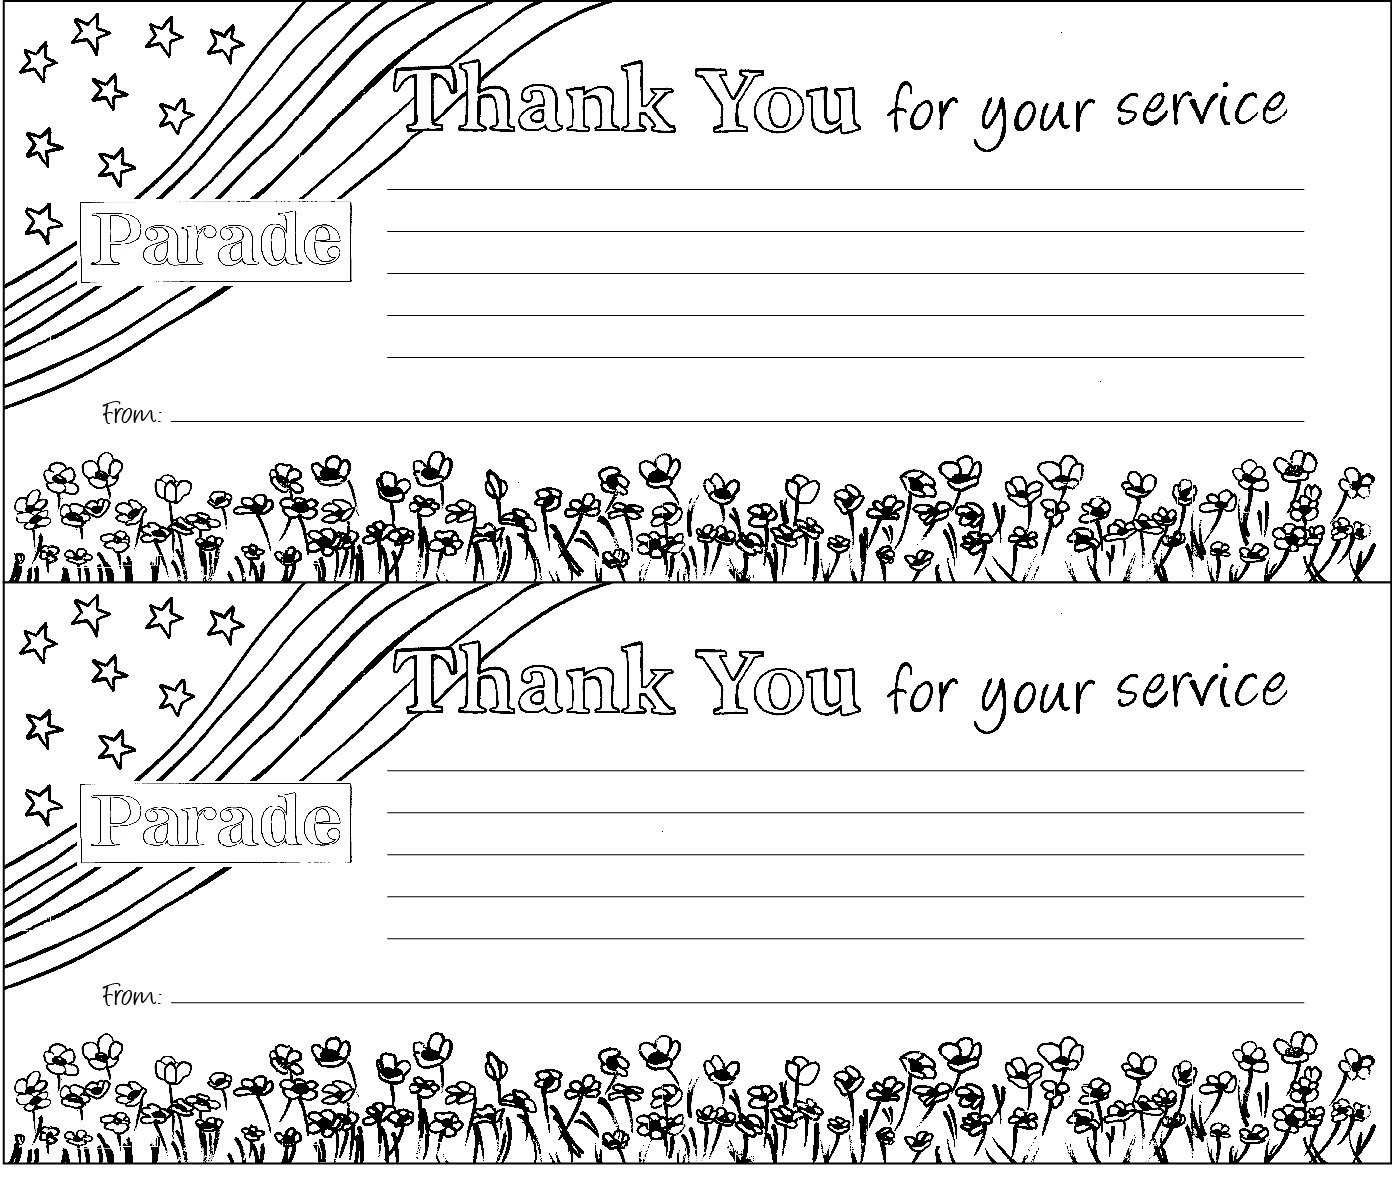 Military Thank You Cards Free Printable (78+ Images In Collection - Military Thank You Cards Free Printable